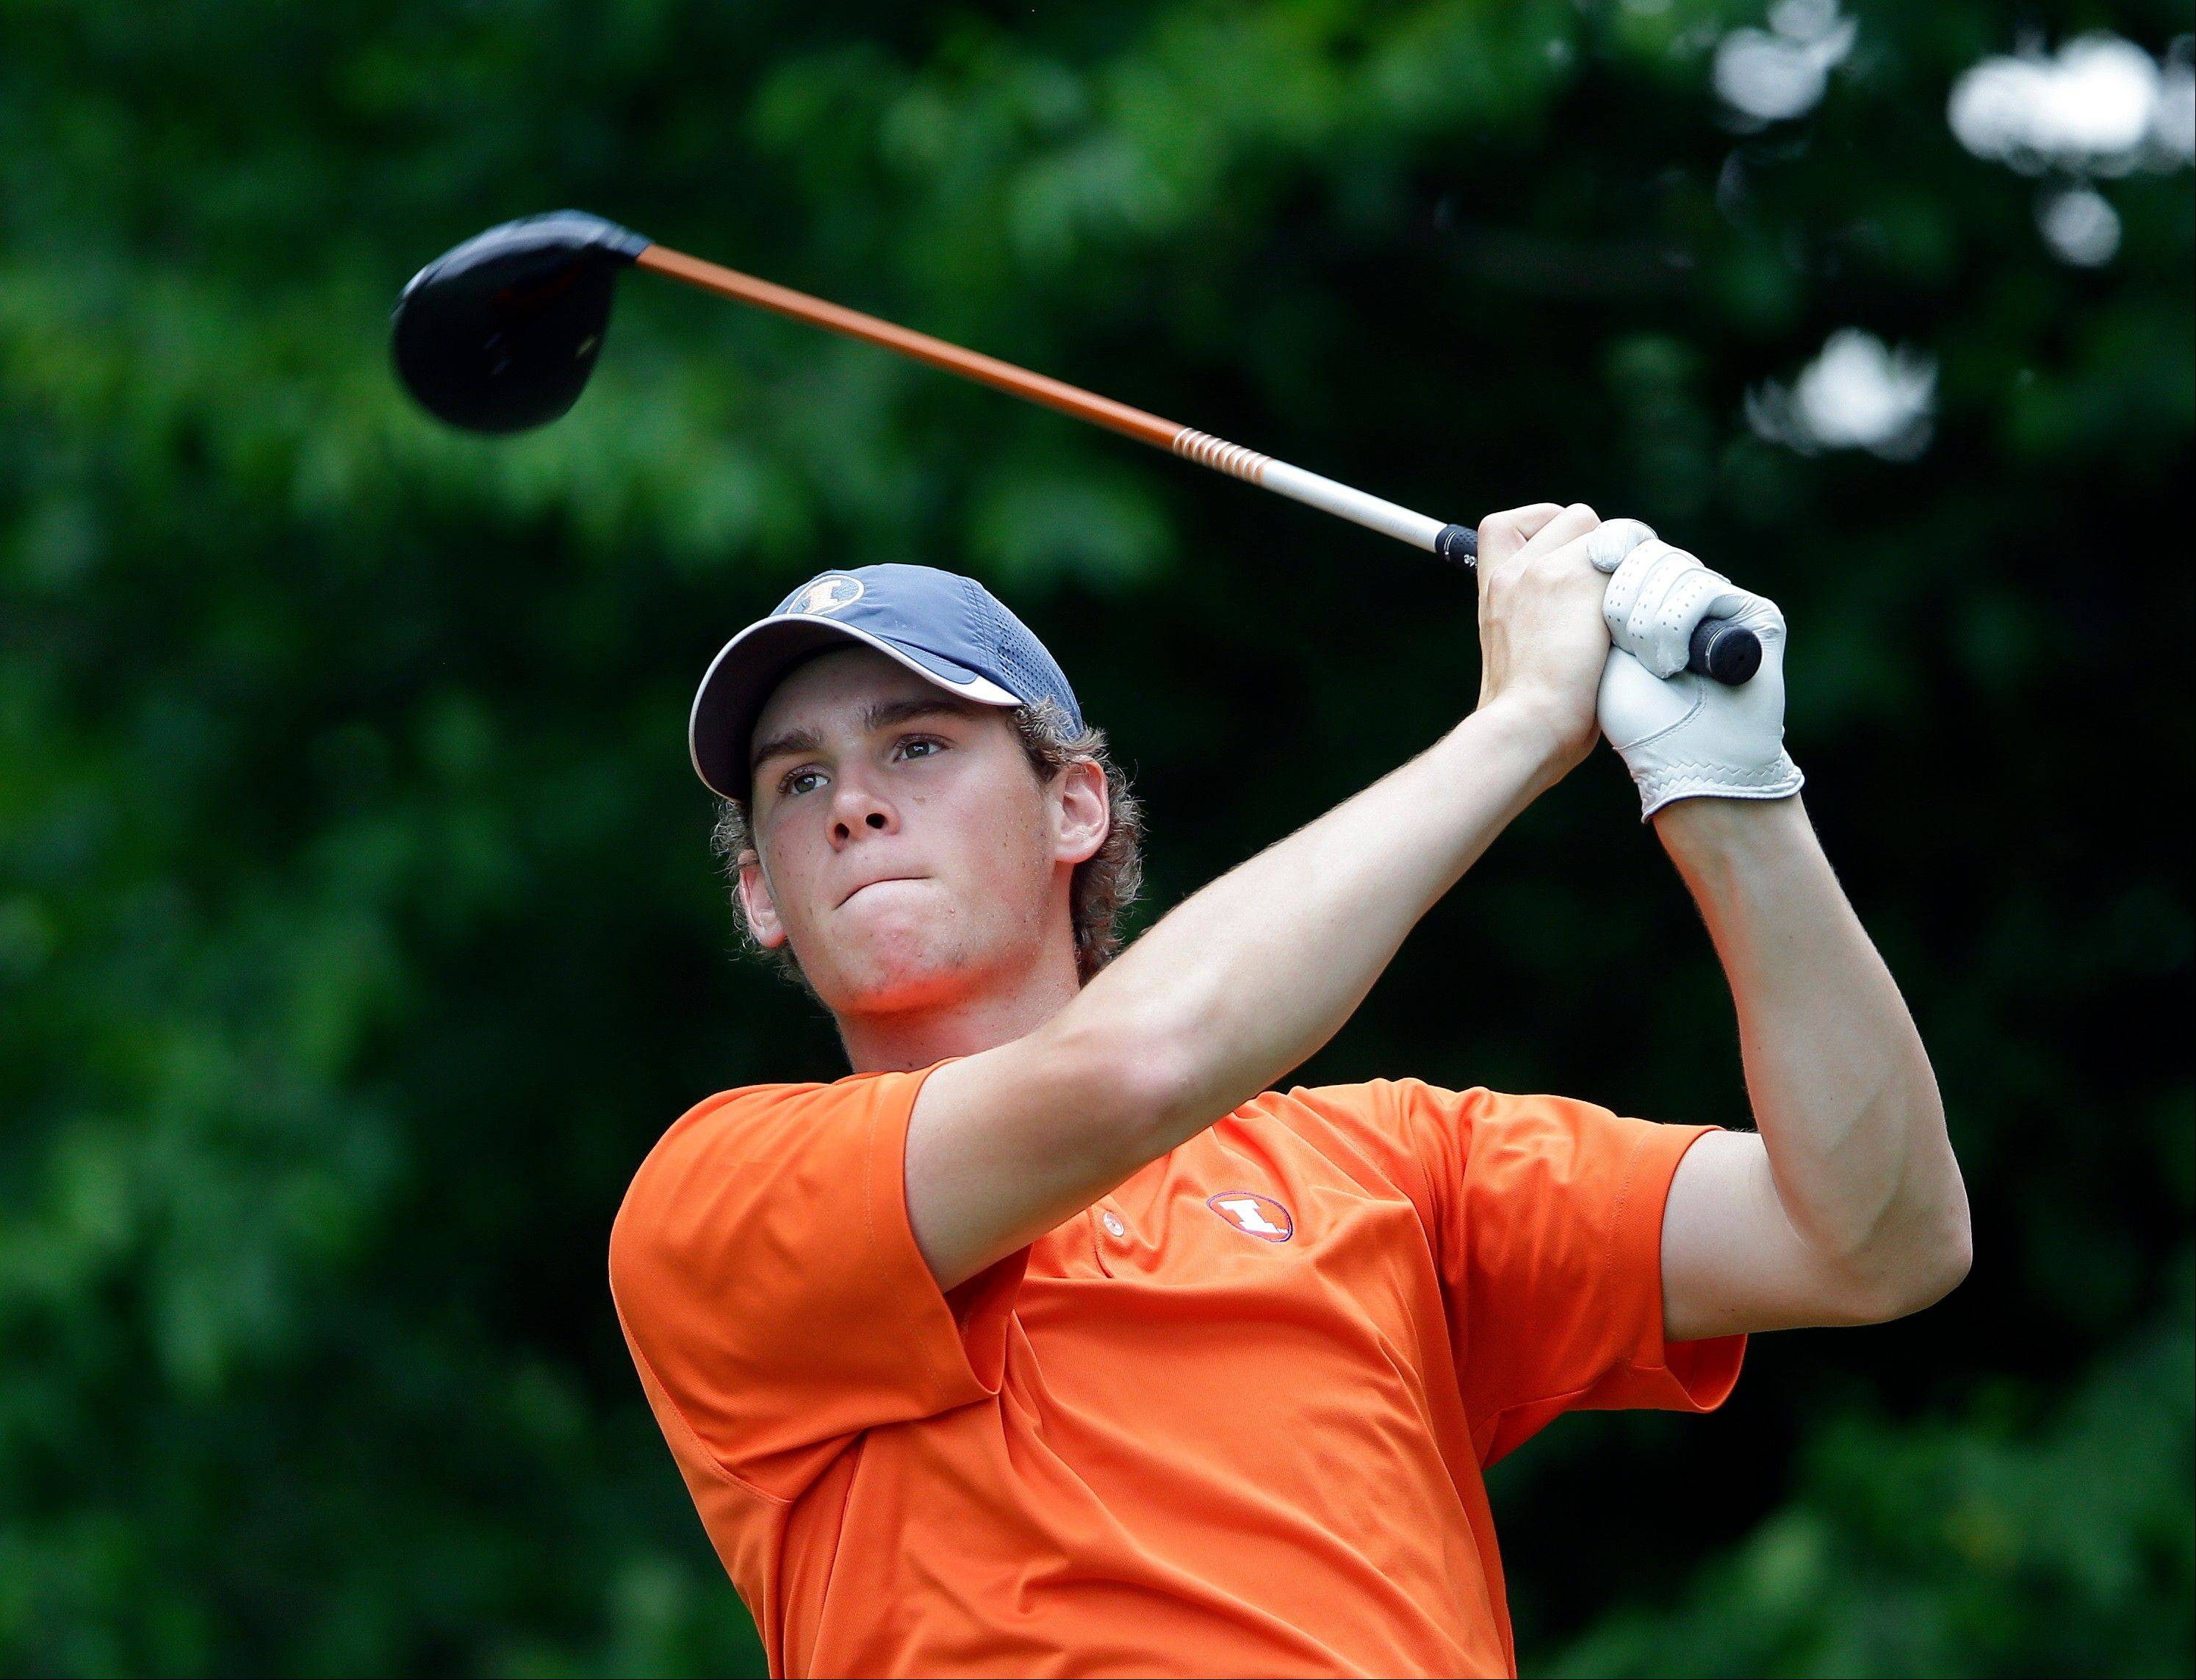 Illinois' Thomas Detry hits from the tee on the 12th hole during the final round of play in the NCAA college men's golf championship against Alabama, Sunday, June 2, 2013, in Milton, Ga.